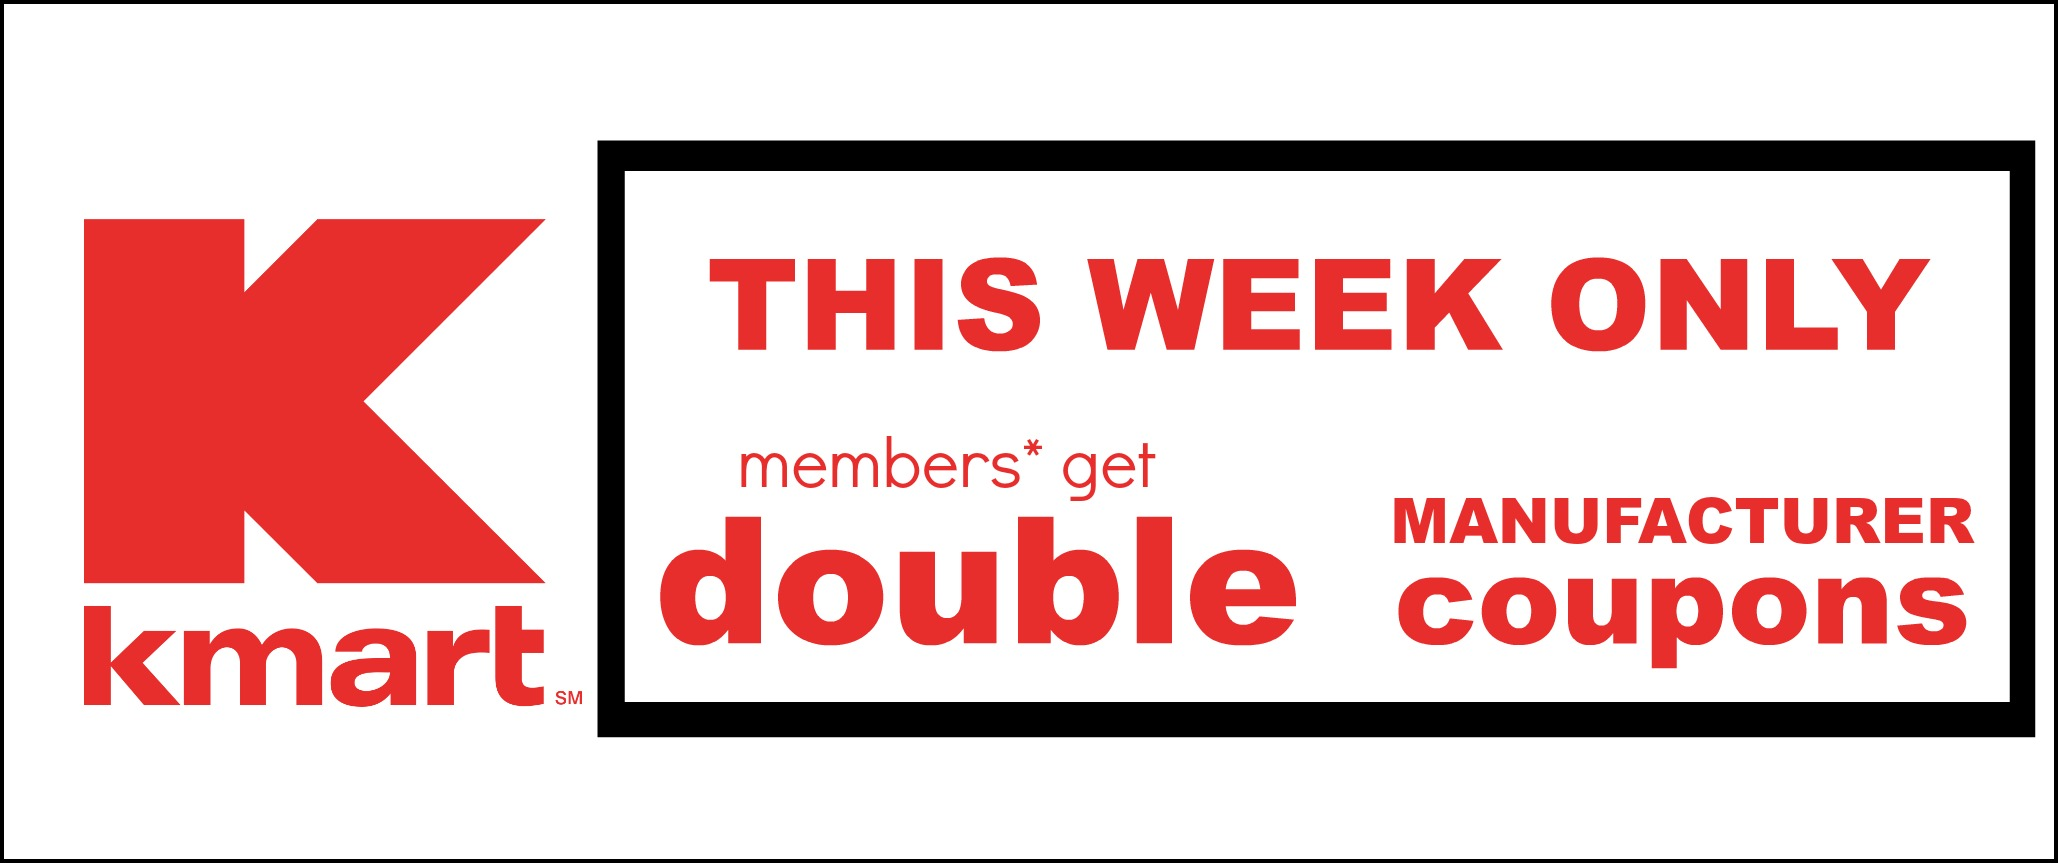 Kmart Coupons Kmart Doubling Coupons Up To 2 Value This Week Only Free Kotex